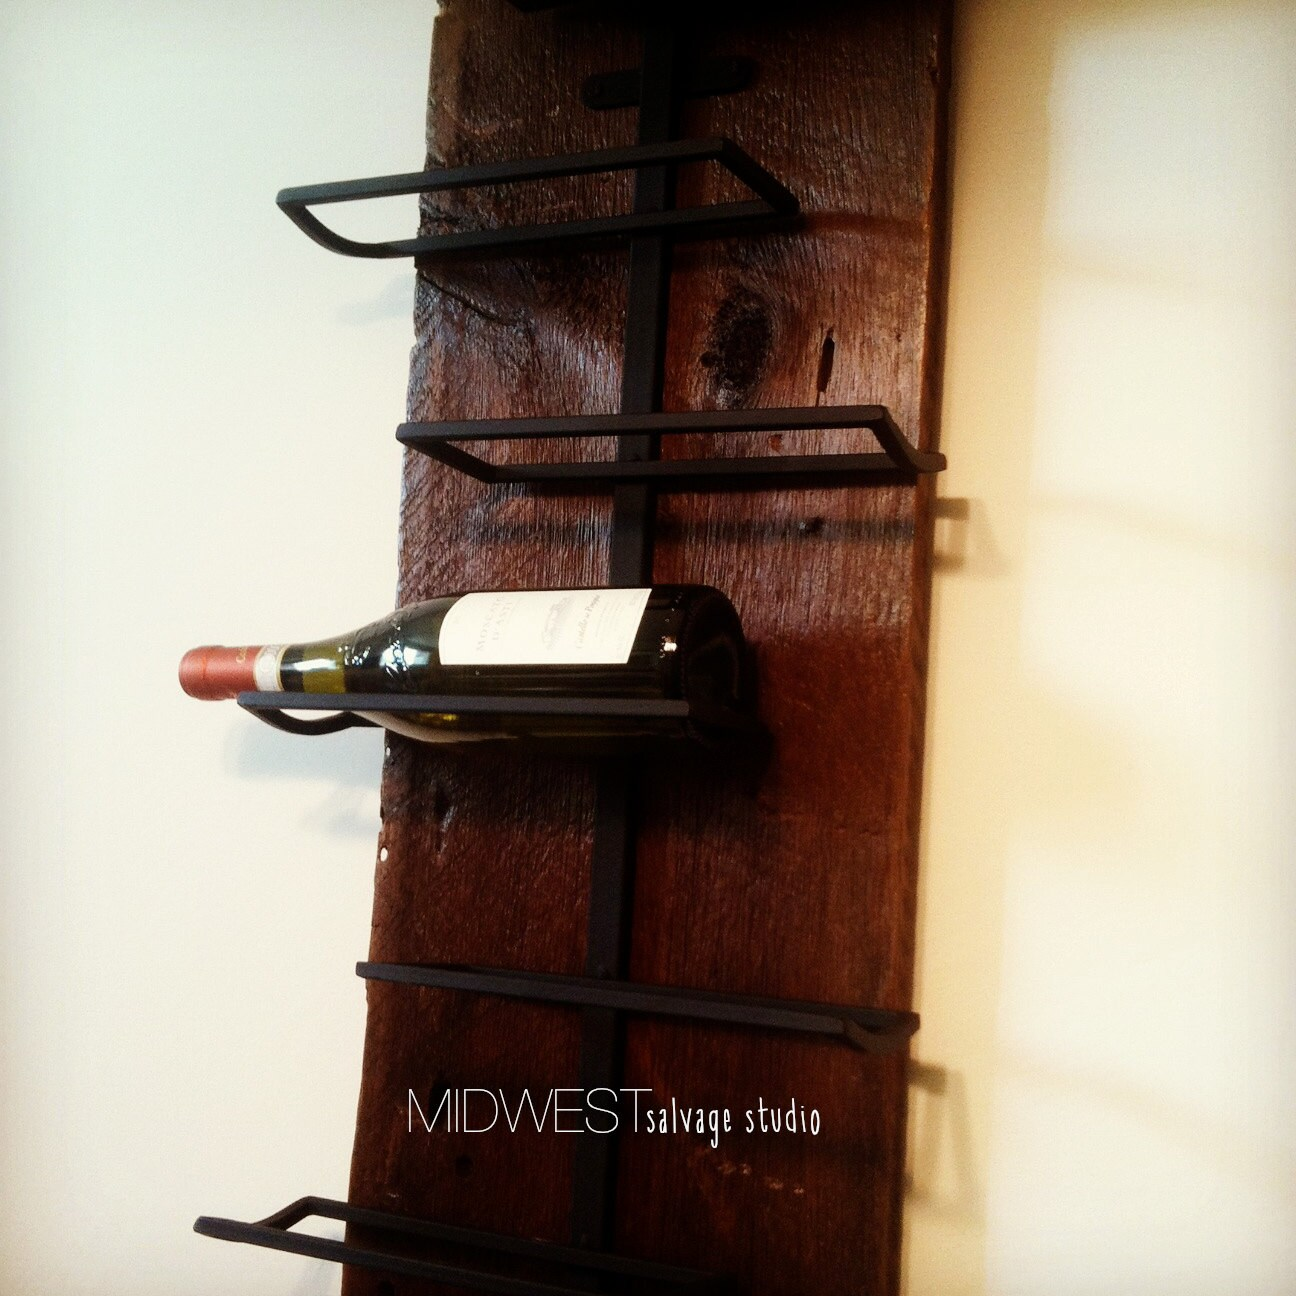 Rustic Modern Salvaged Wood Wine Rack By Midwestsalvagestudio